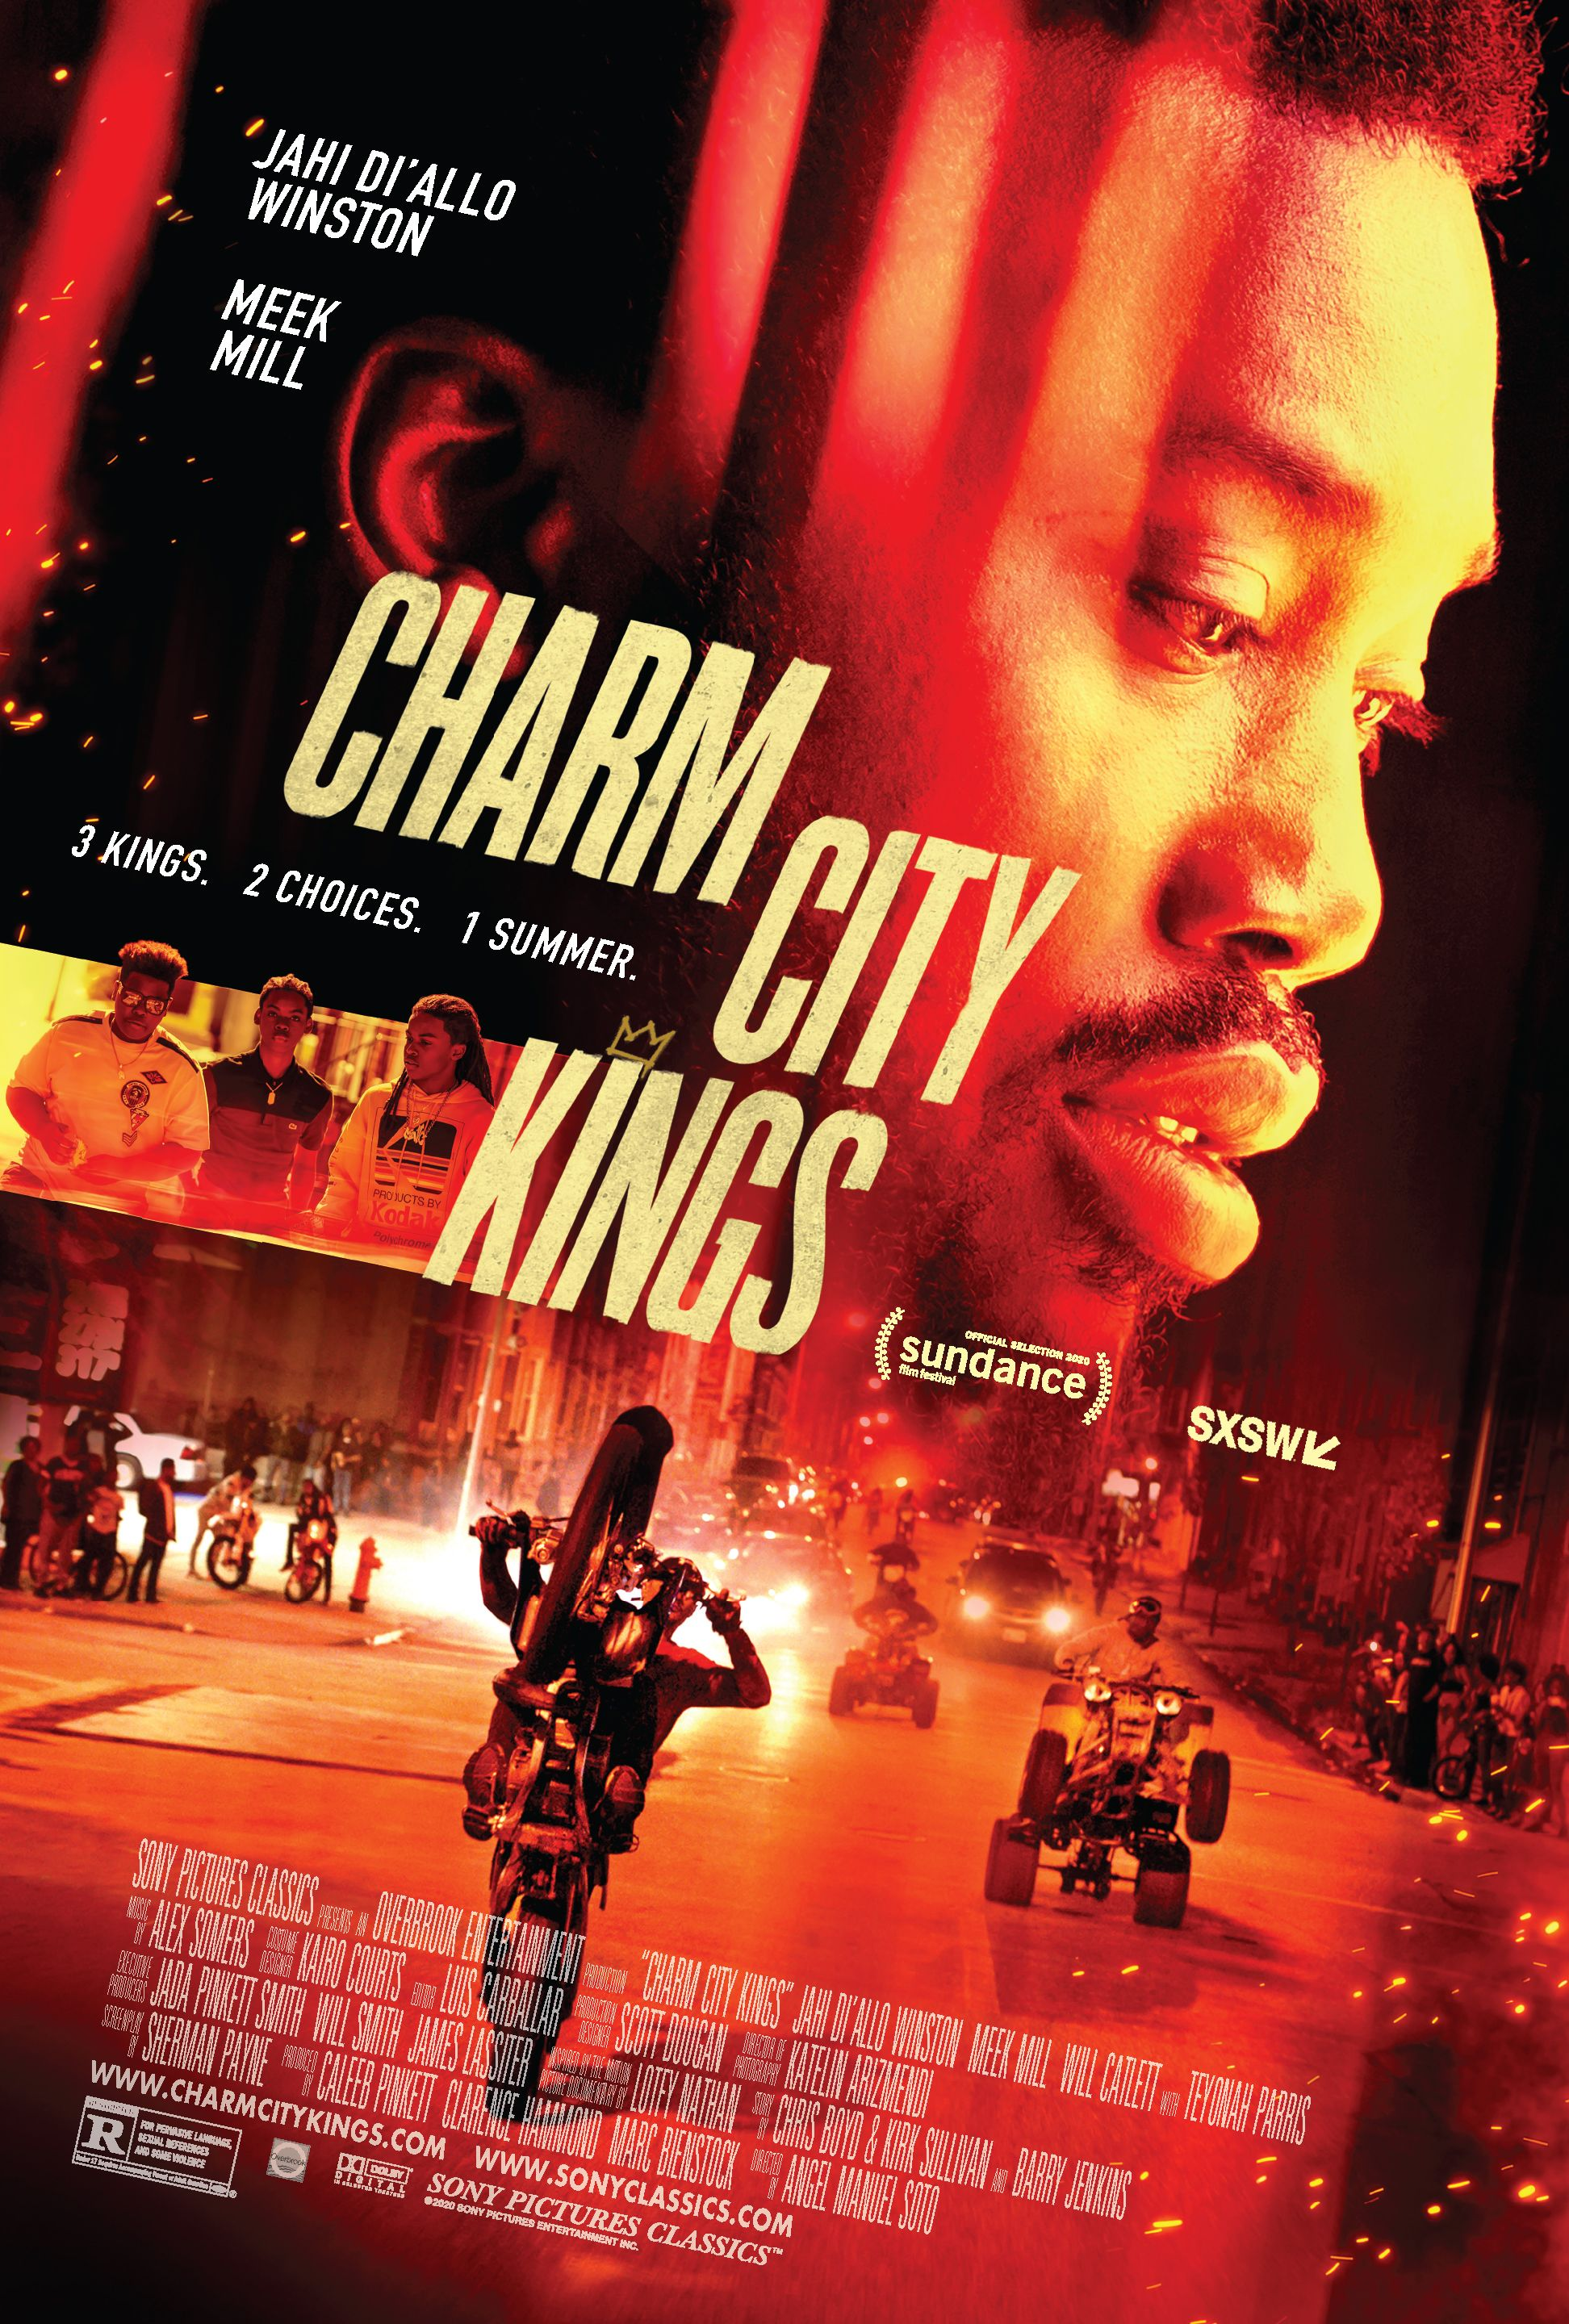 Charm City Kings Movie Poster Images By Gray Pictures Llc Film Photographer In 2020 Kings Movie Full Movies Movies Online